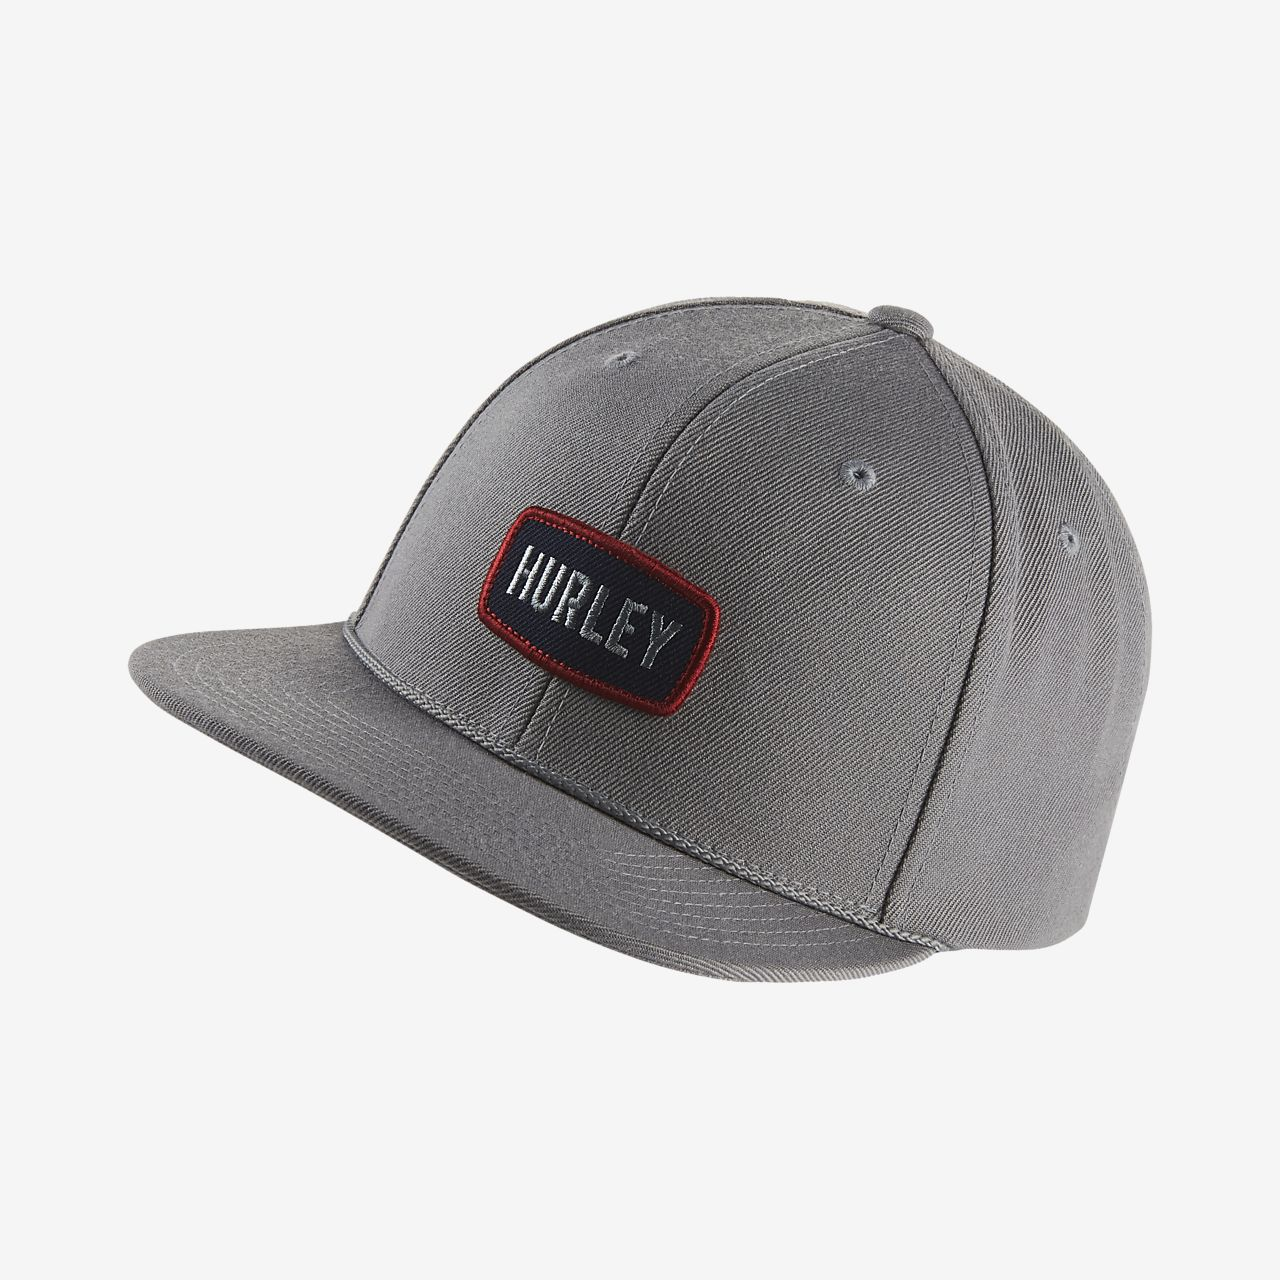 c1842da8ea3 Hurley Schuster Adjustable Hat. Nike.com AT